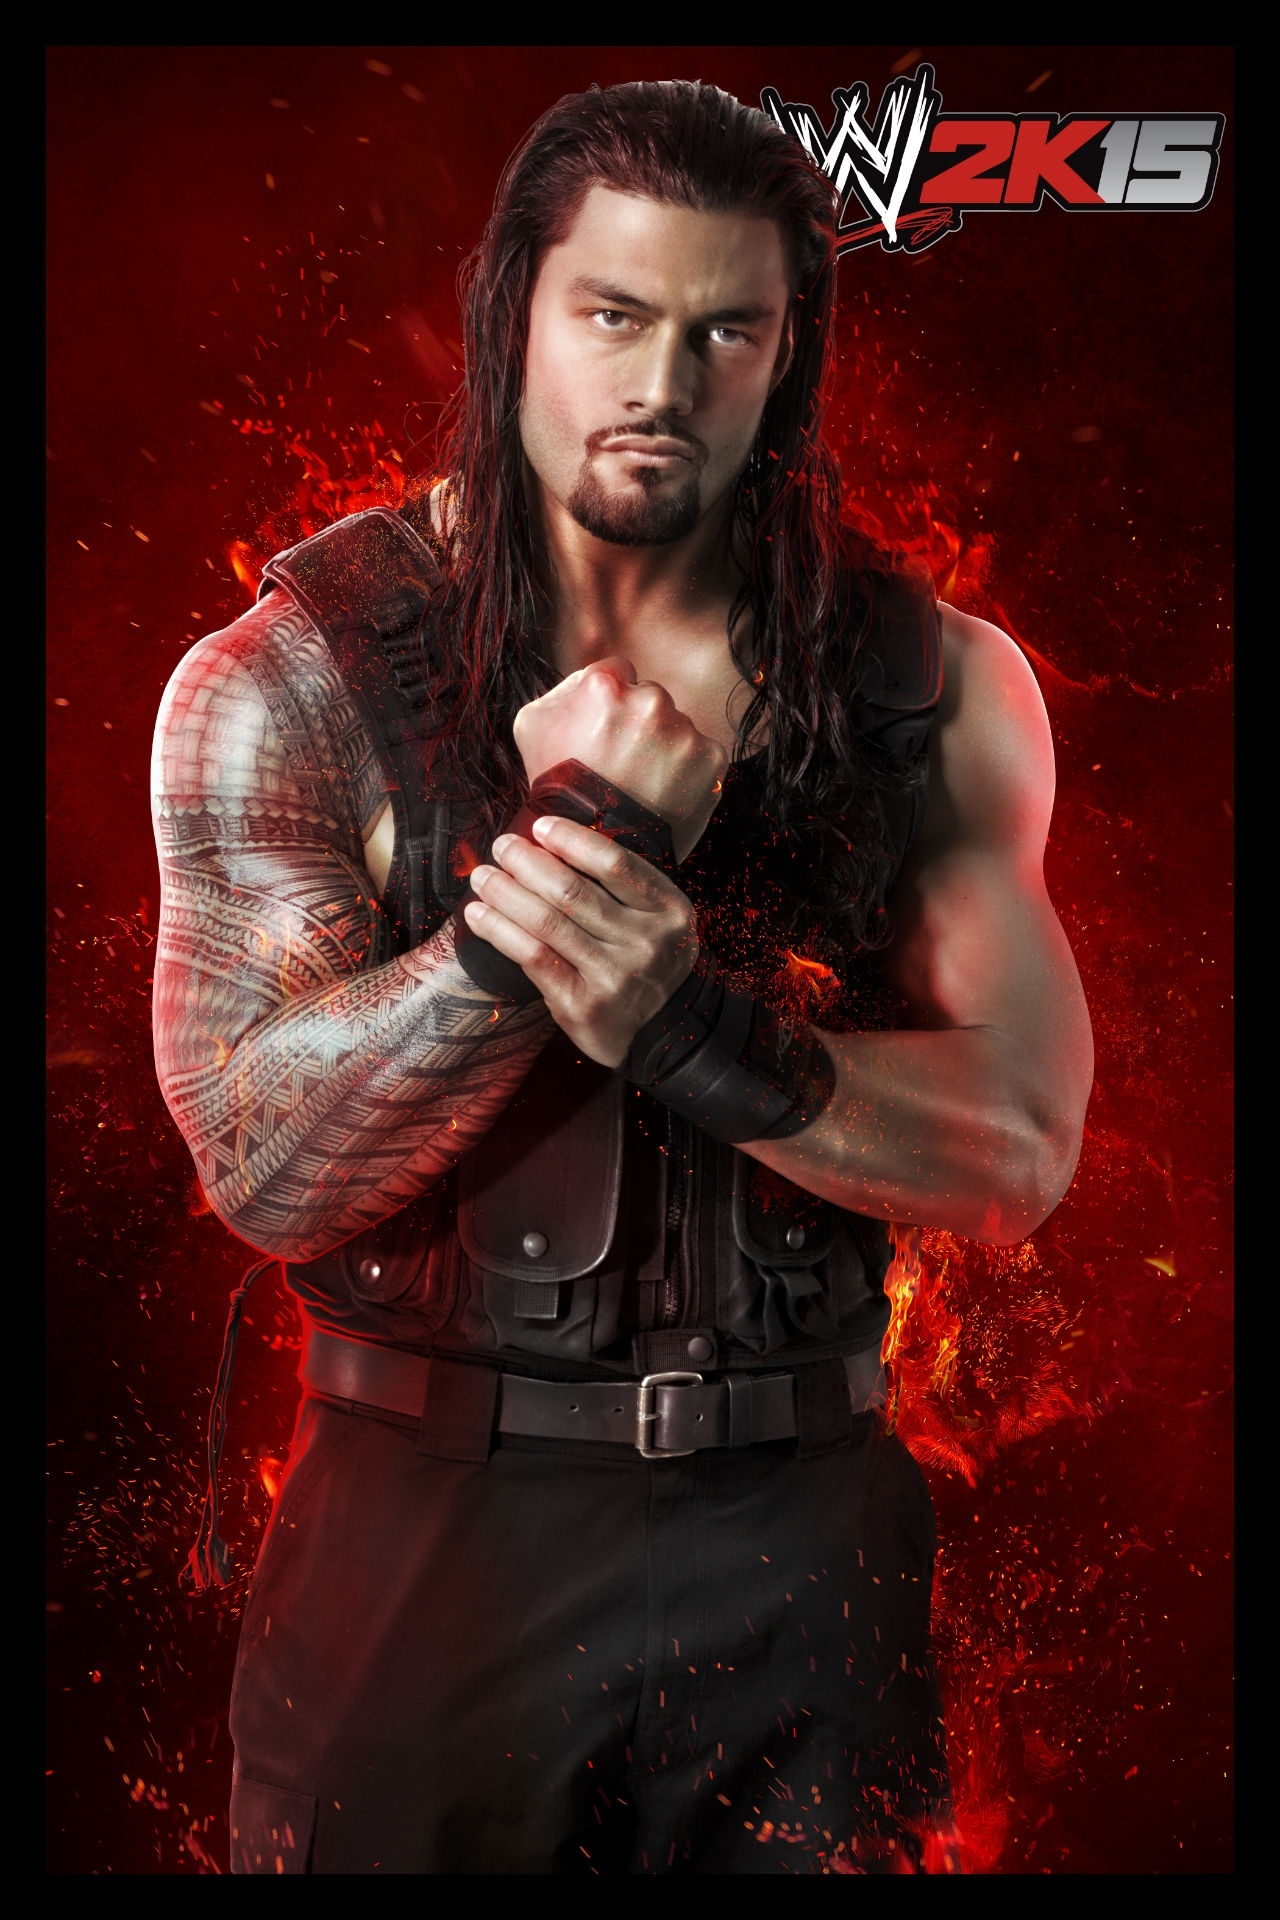 10 Latest Wwe Roman Reigns Wallpapers Full Hd 1920 1080 For Pc